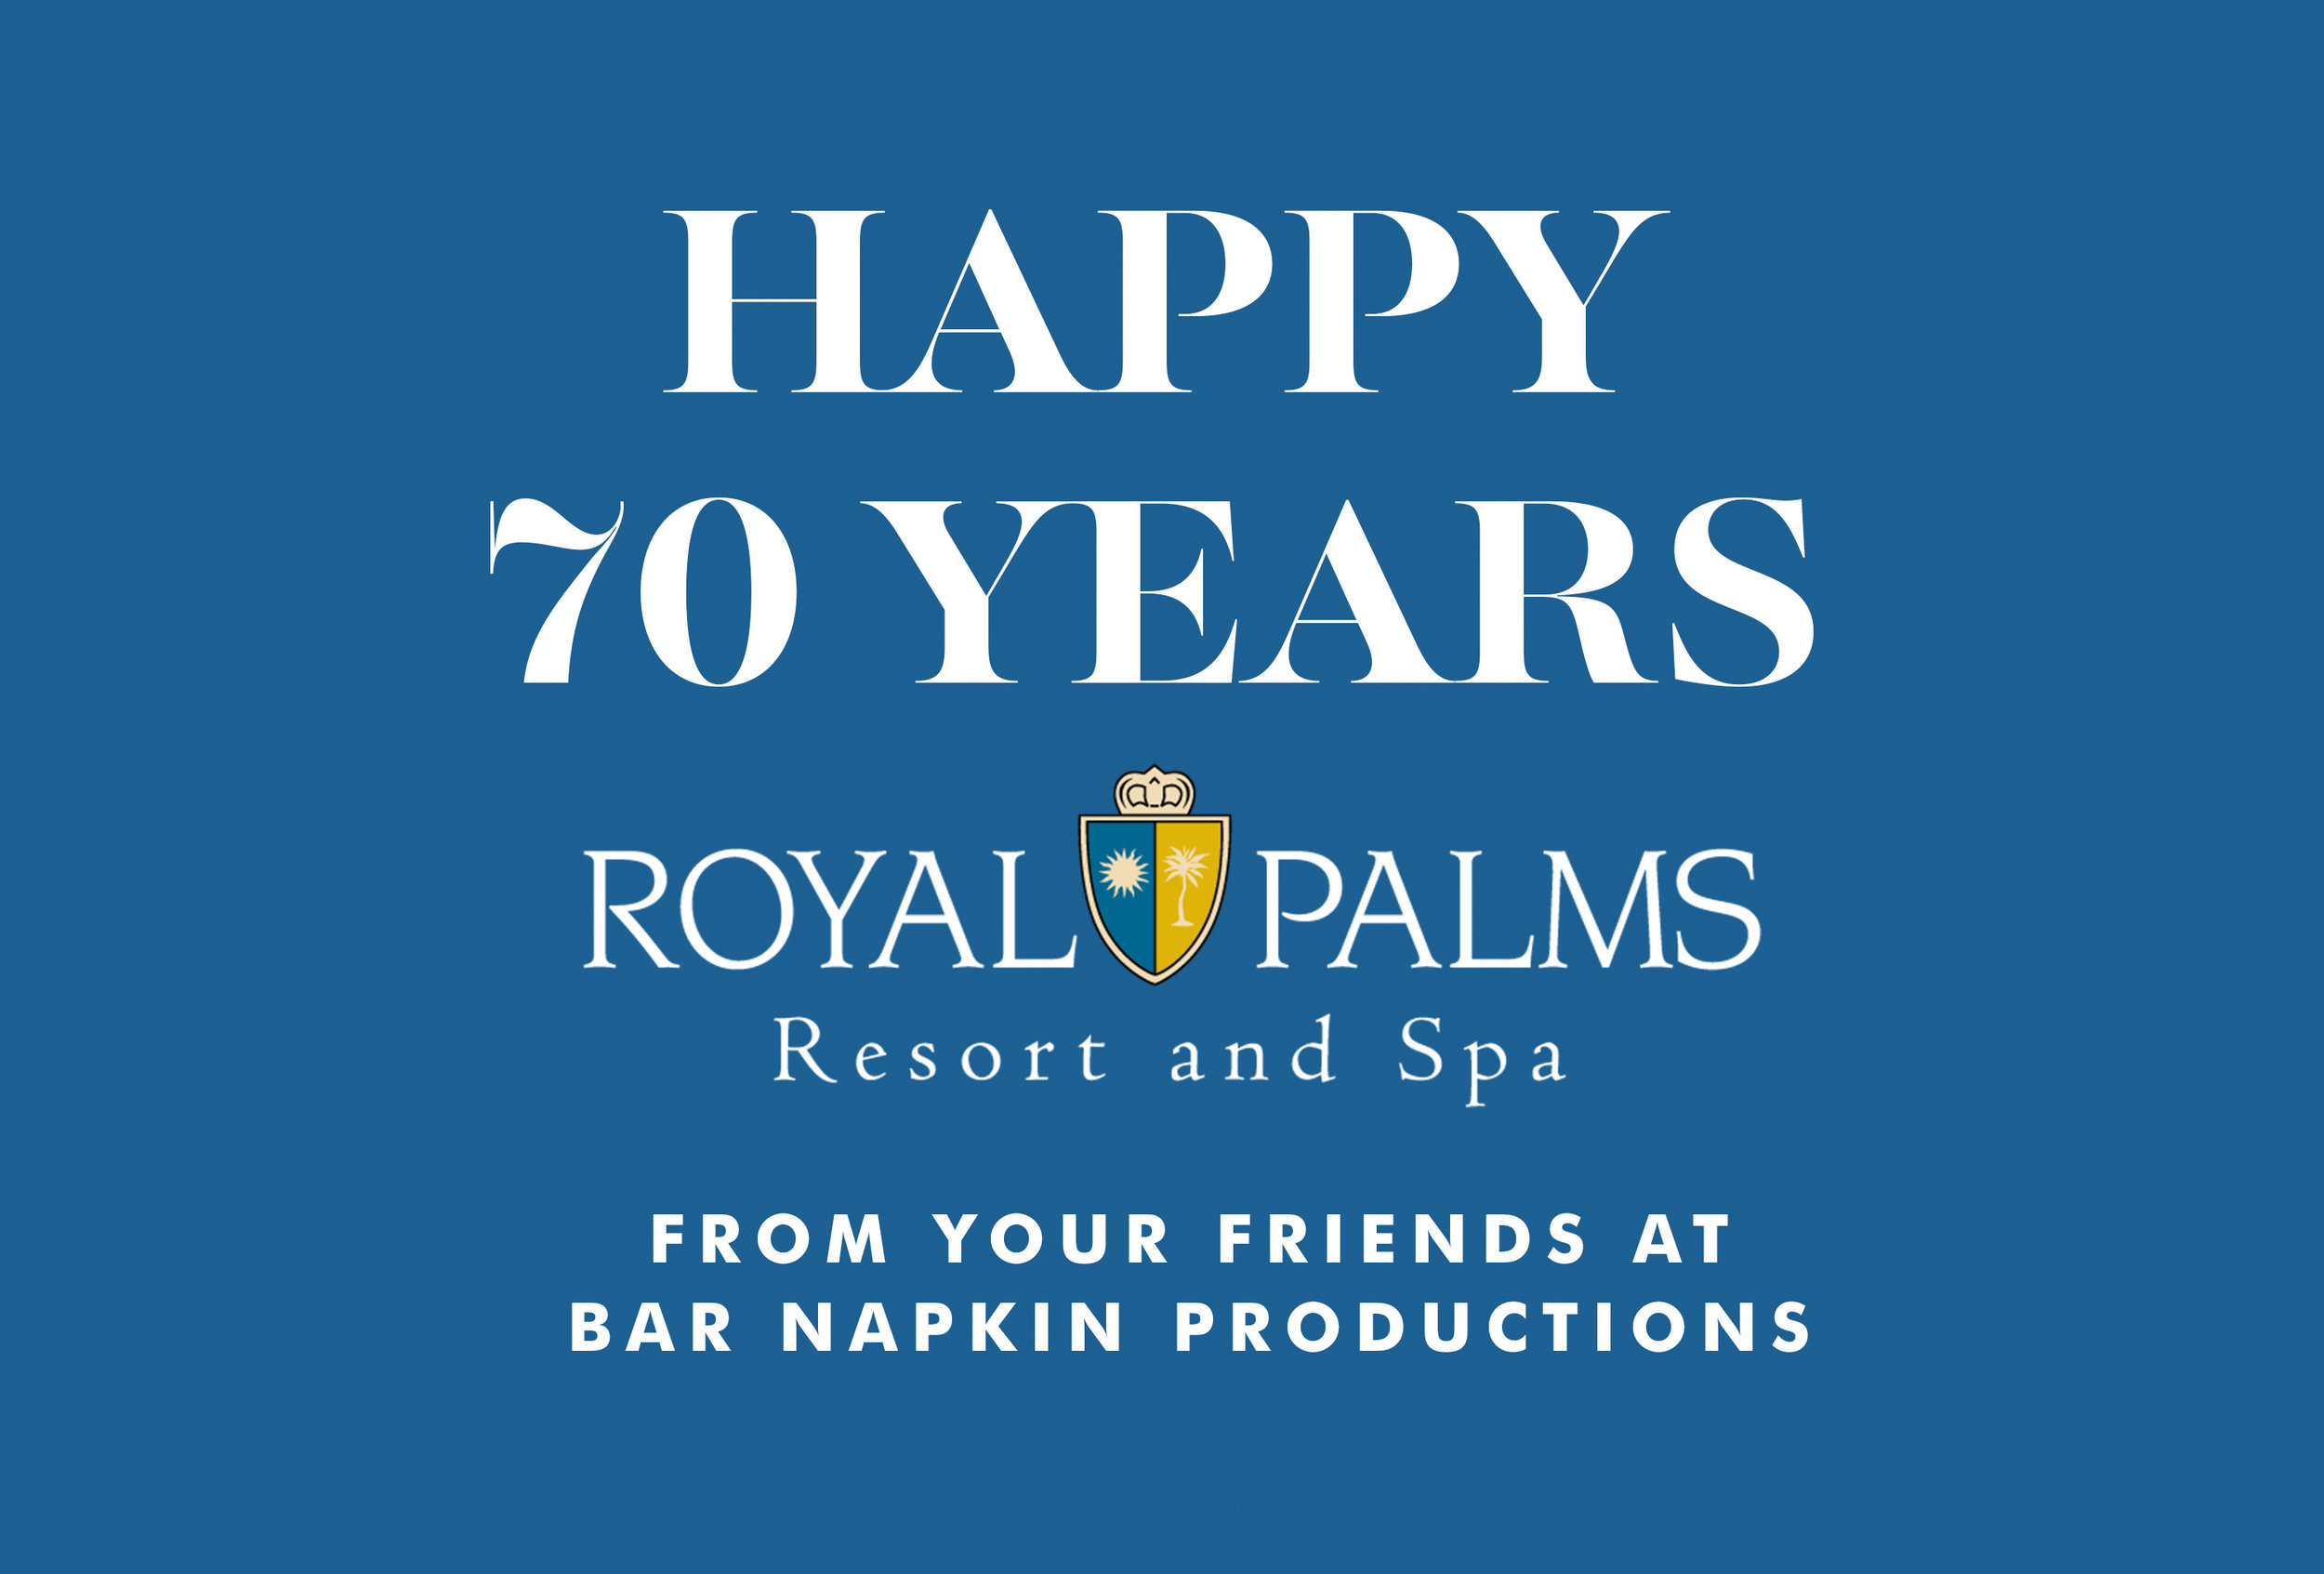 180926 Royal Palms 70 Years.jpg